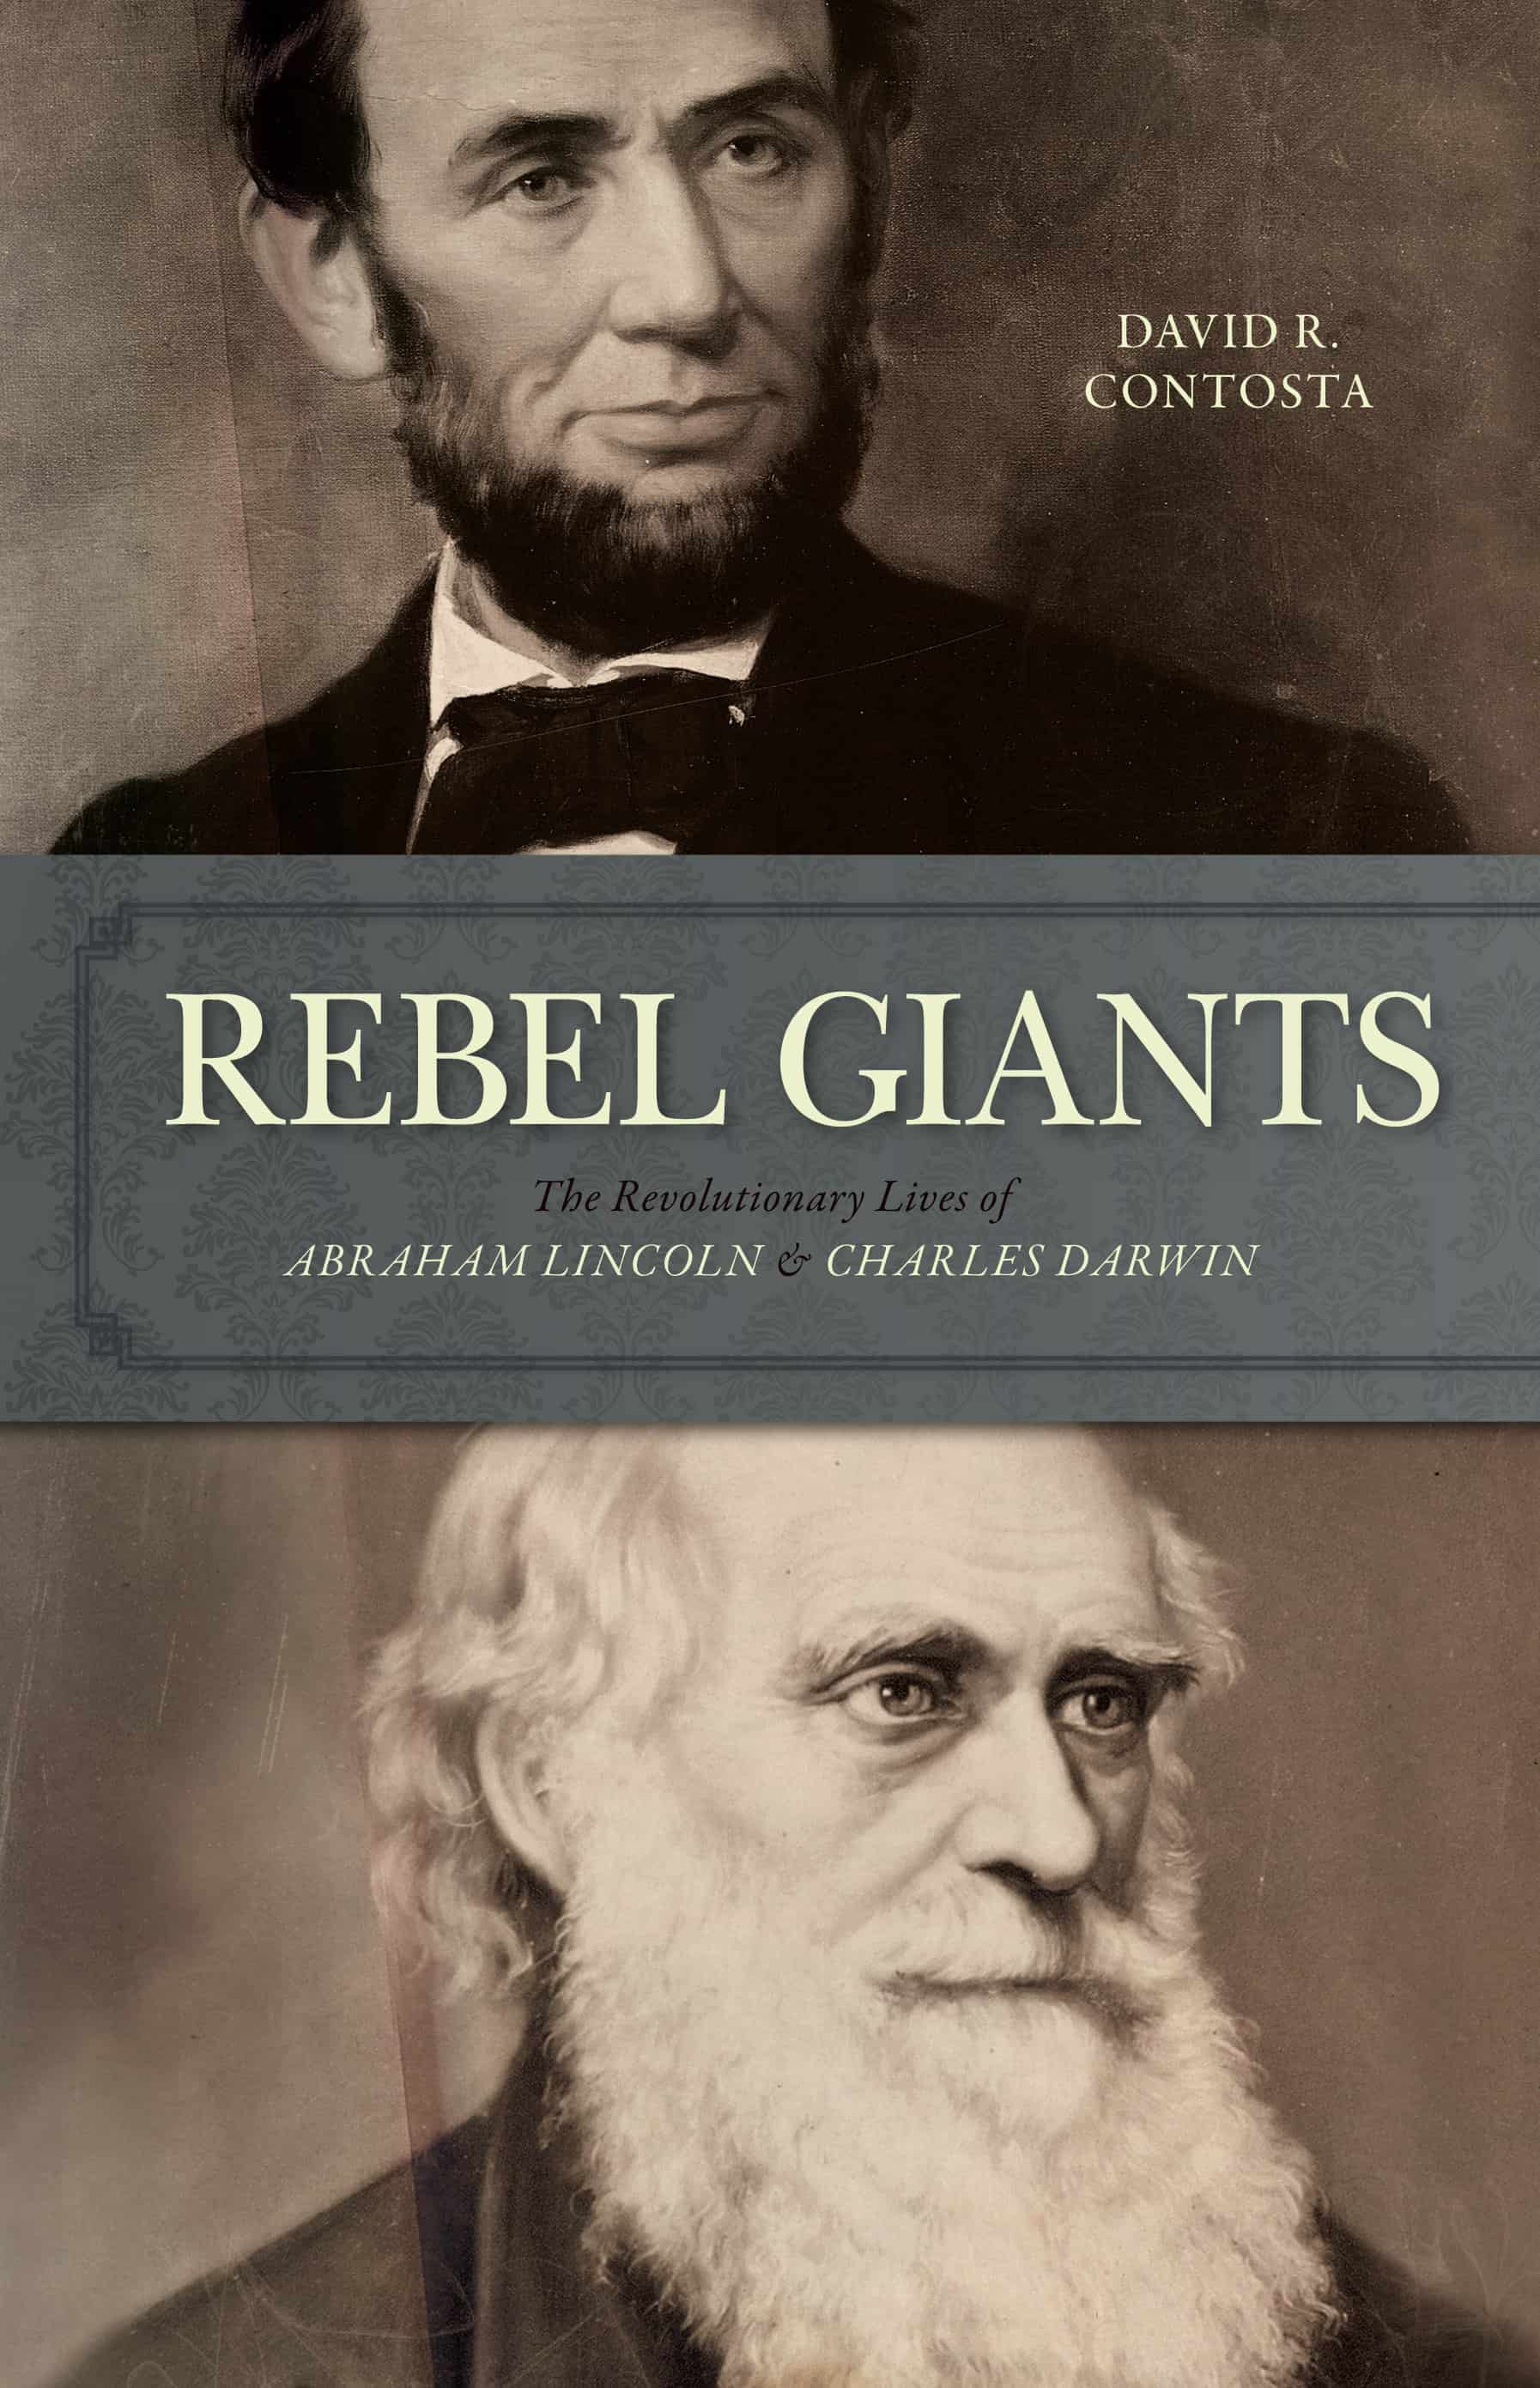 Rebel Giants COVER - Rebel Giants: The Revolutionary Lives of Abraham Lincoln & Charles Darwin